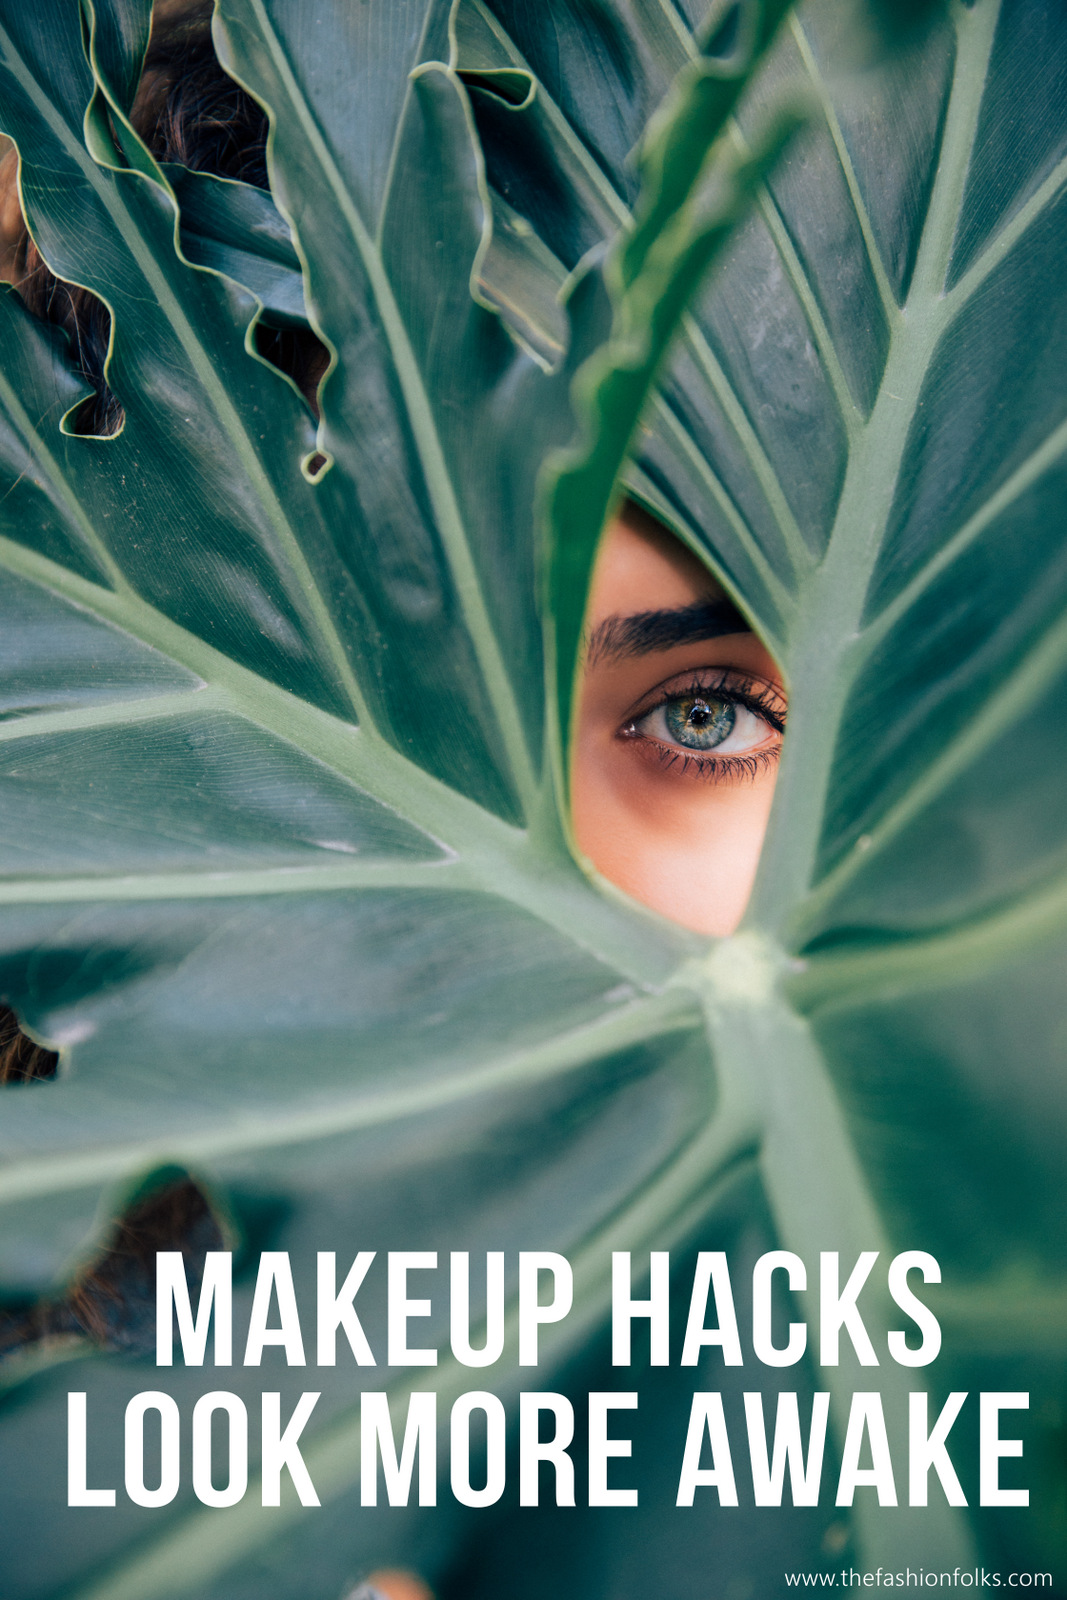 Makeup Hacks - Look More Awake